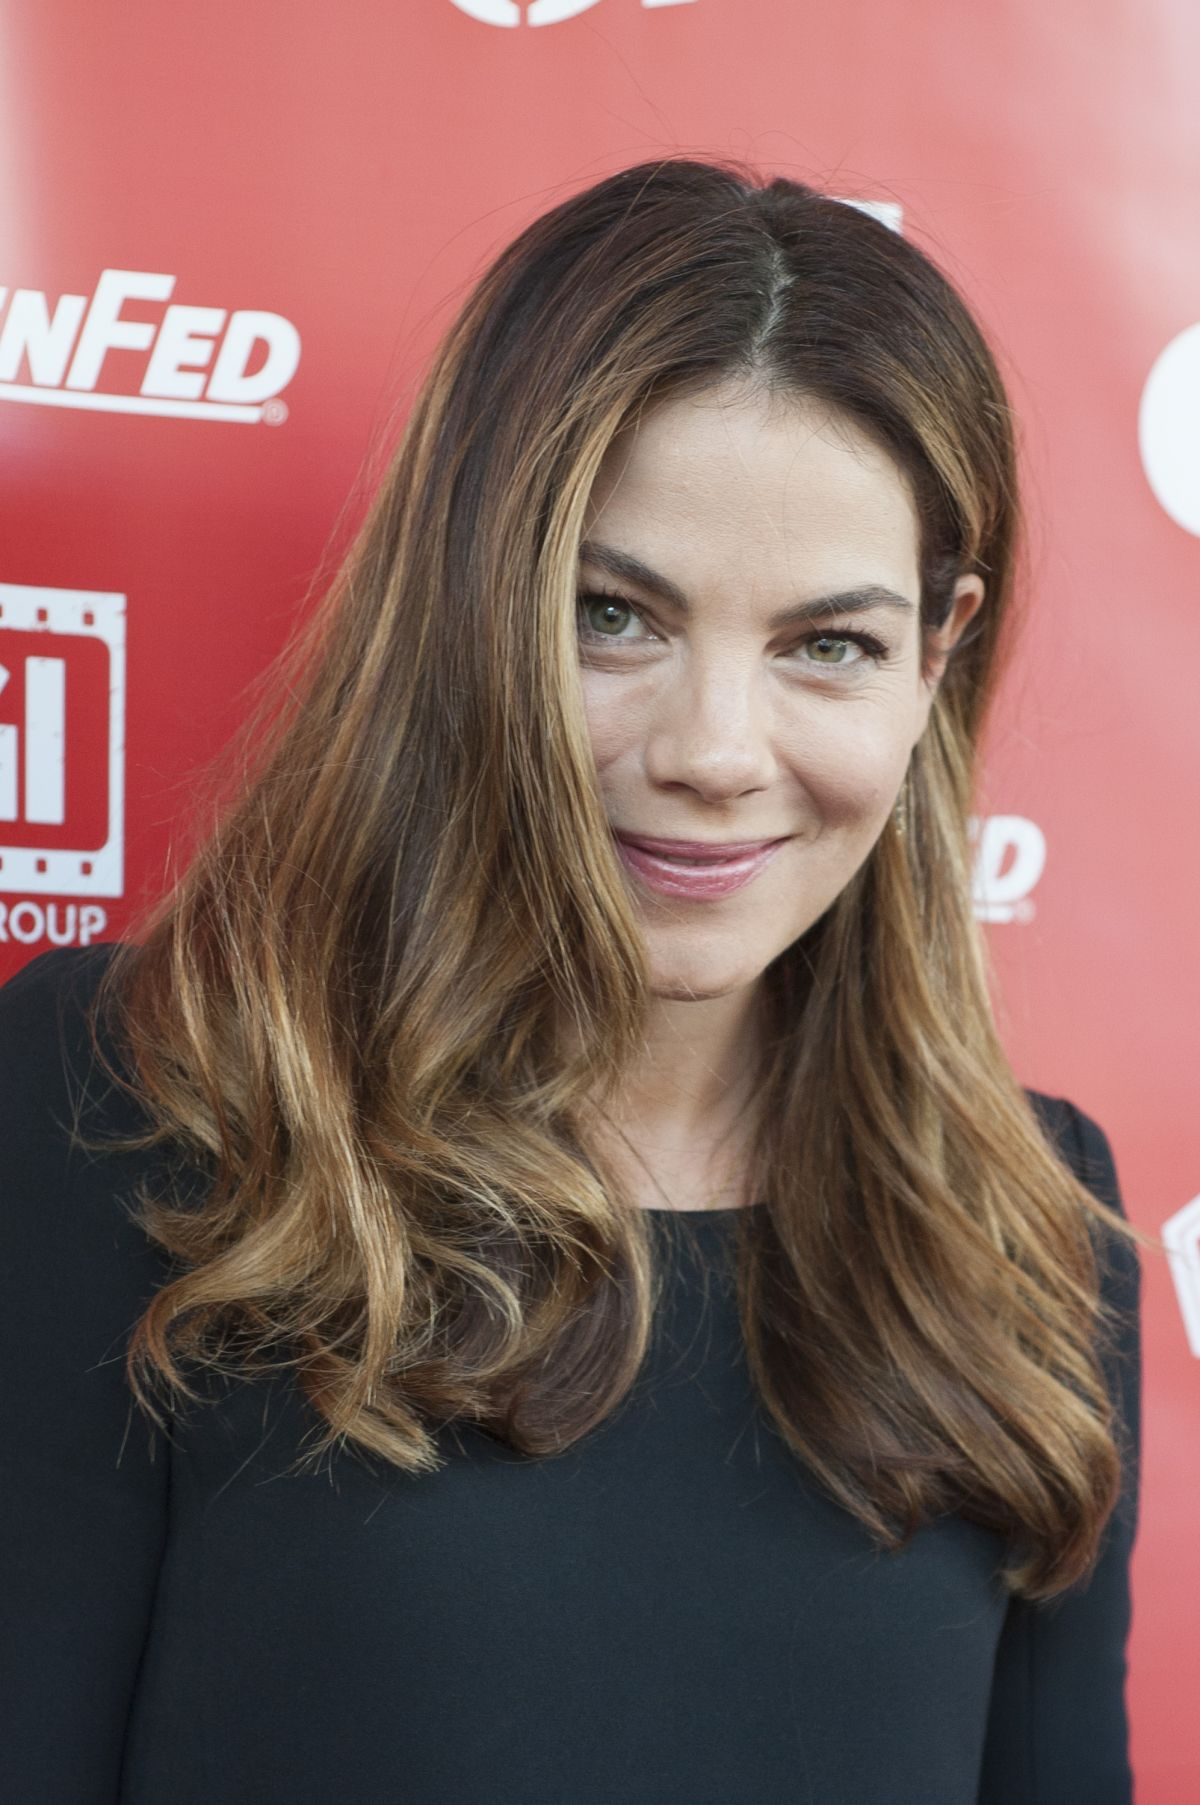 MICHELLE MONAGHAN at Fort Bliss Premiere at GI Film Festival in Alexandria